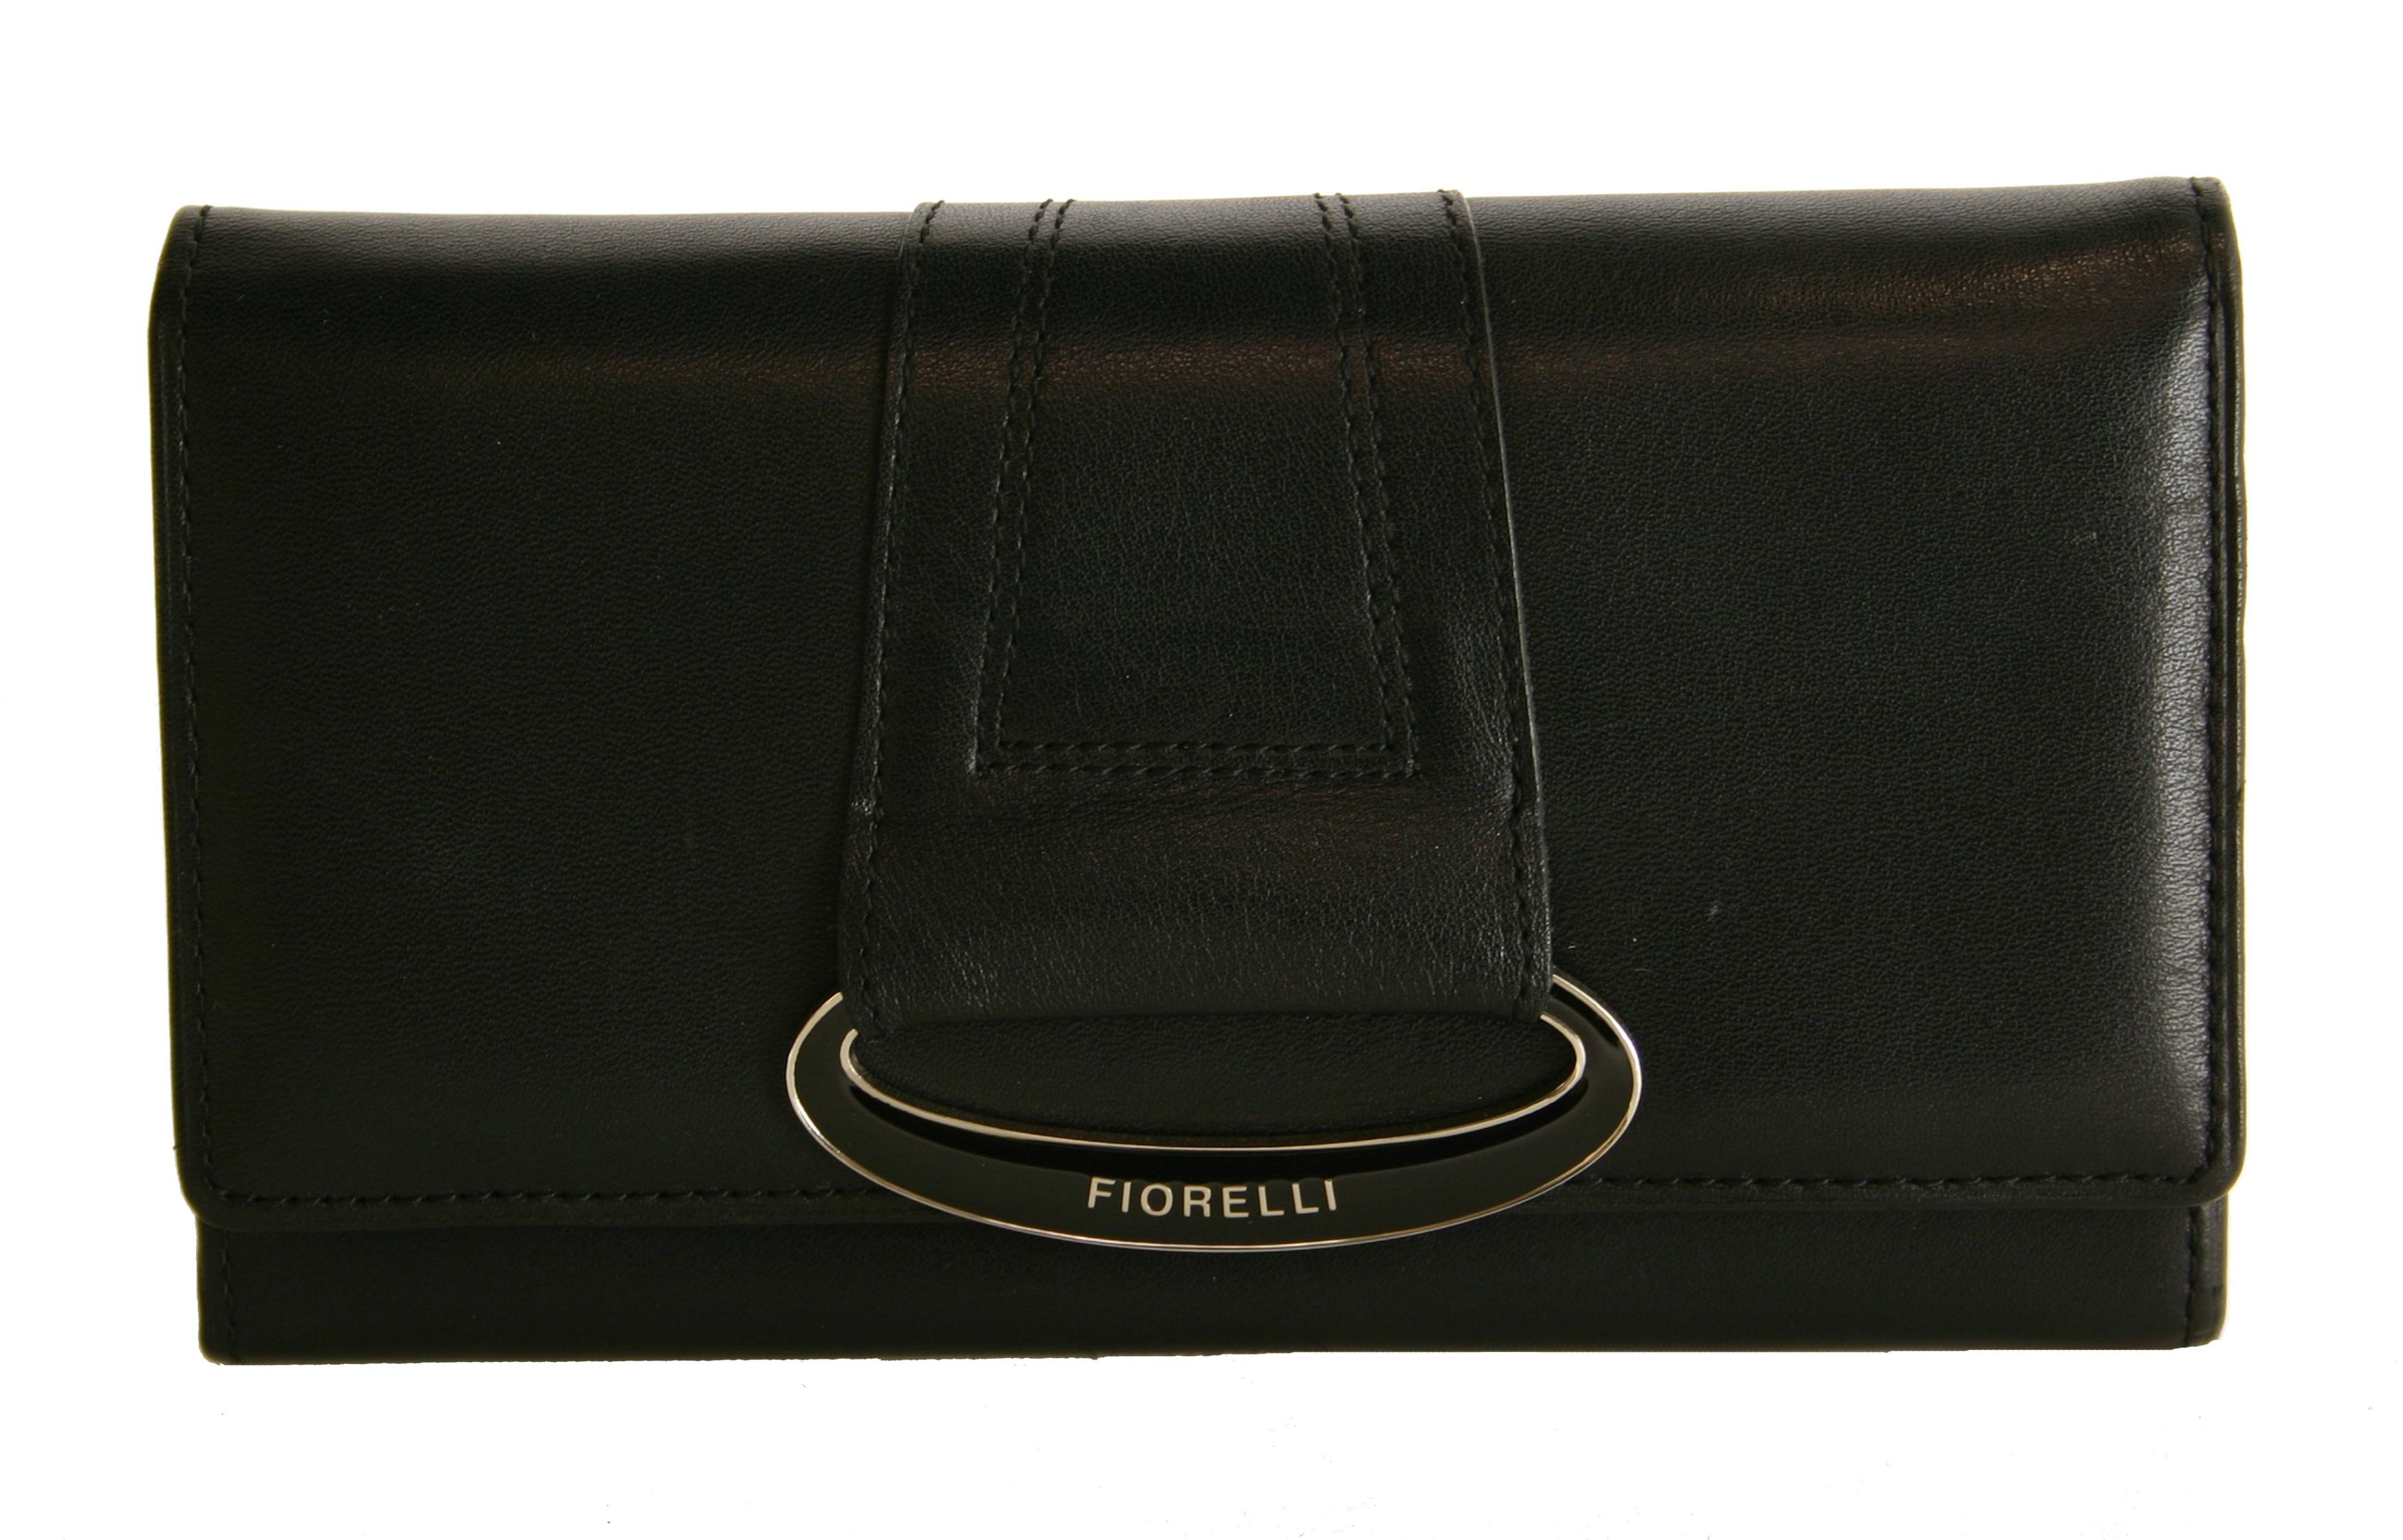 Fiorelli Oval medium leather flap-over purse product image